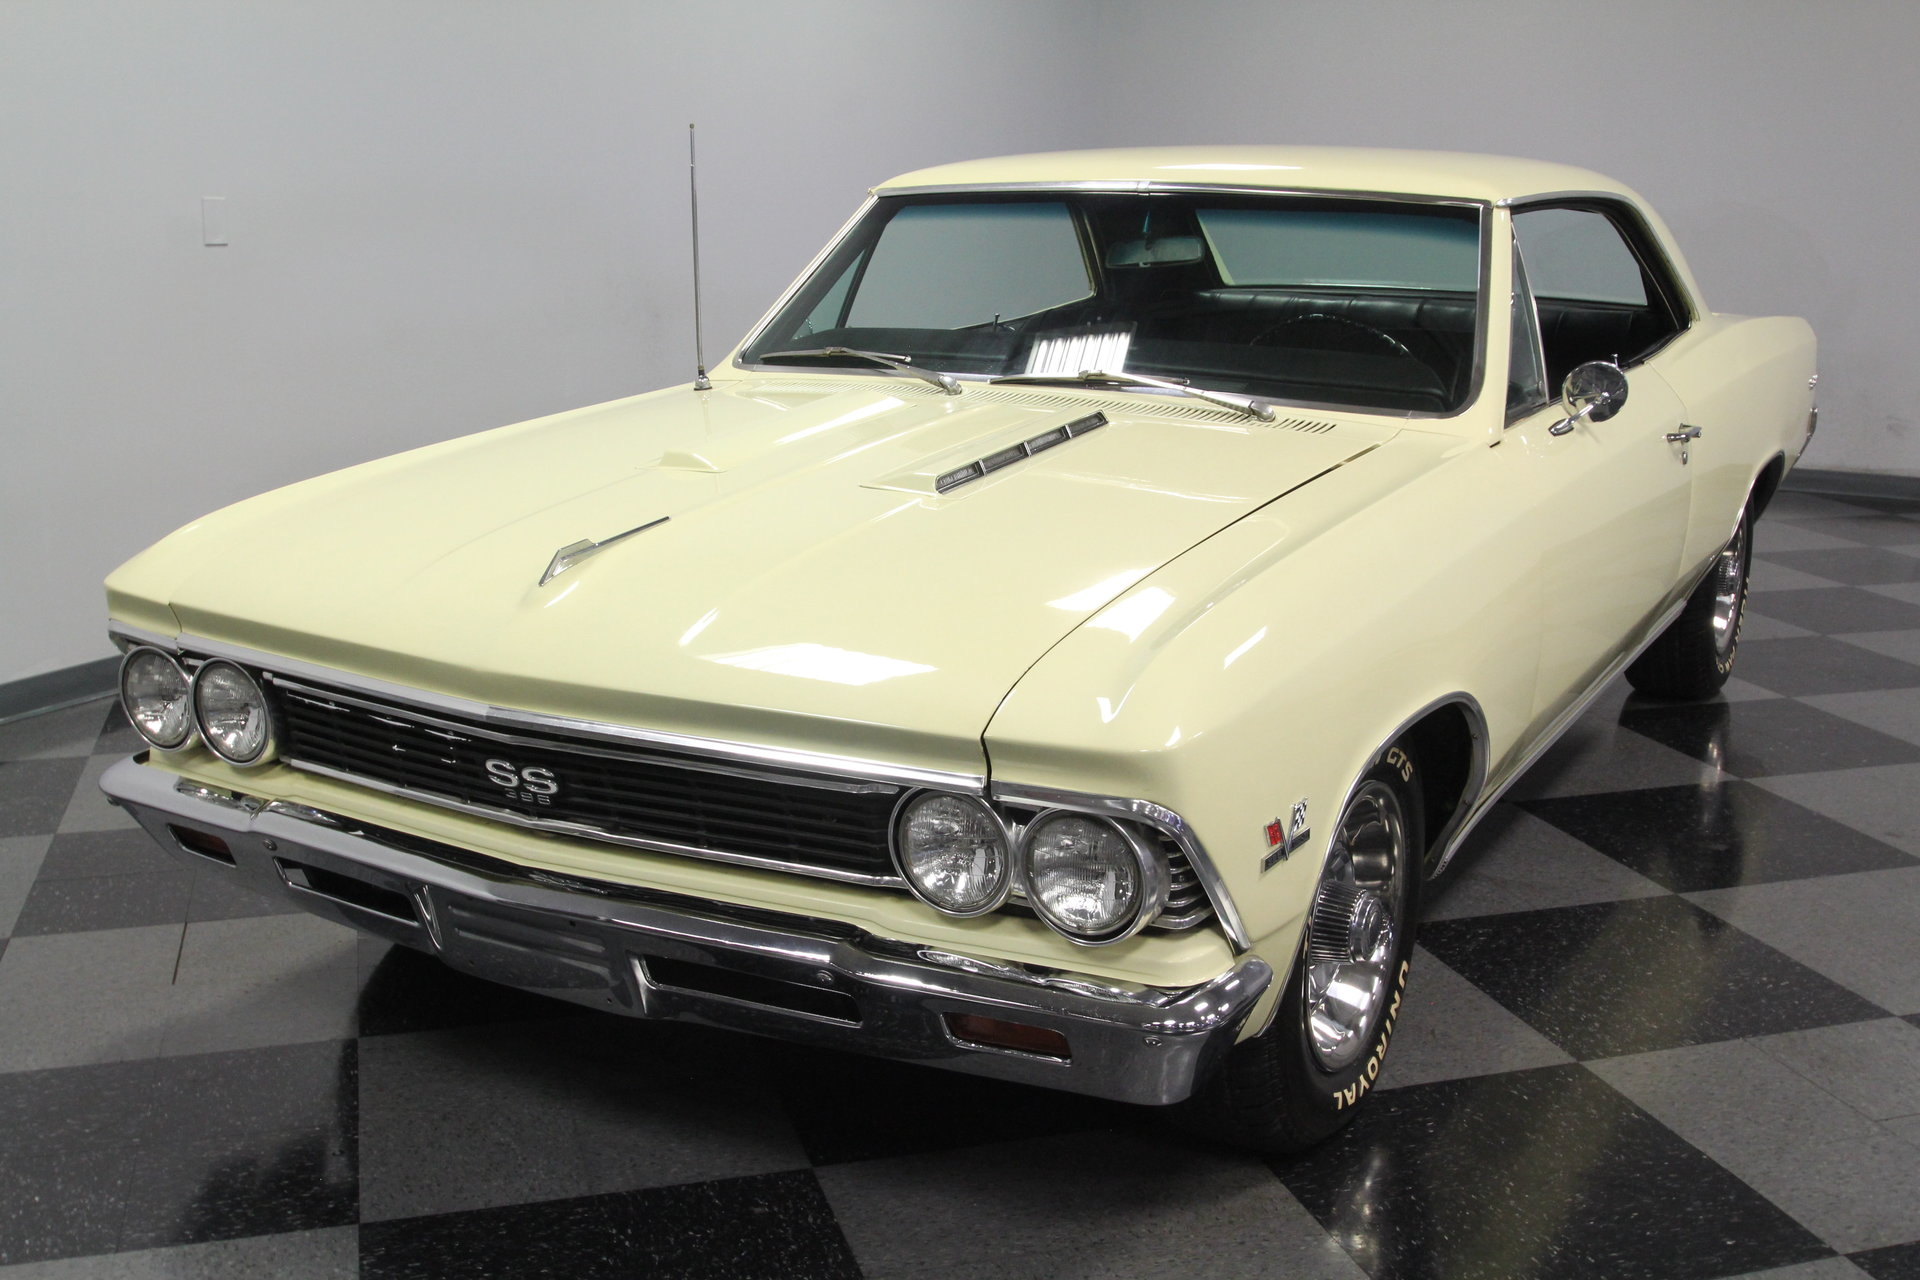 1966 Chevrolet Chevelle Streetside Classics The Nations Trusted Ss 396 Show More Photos